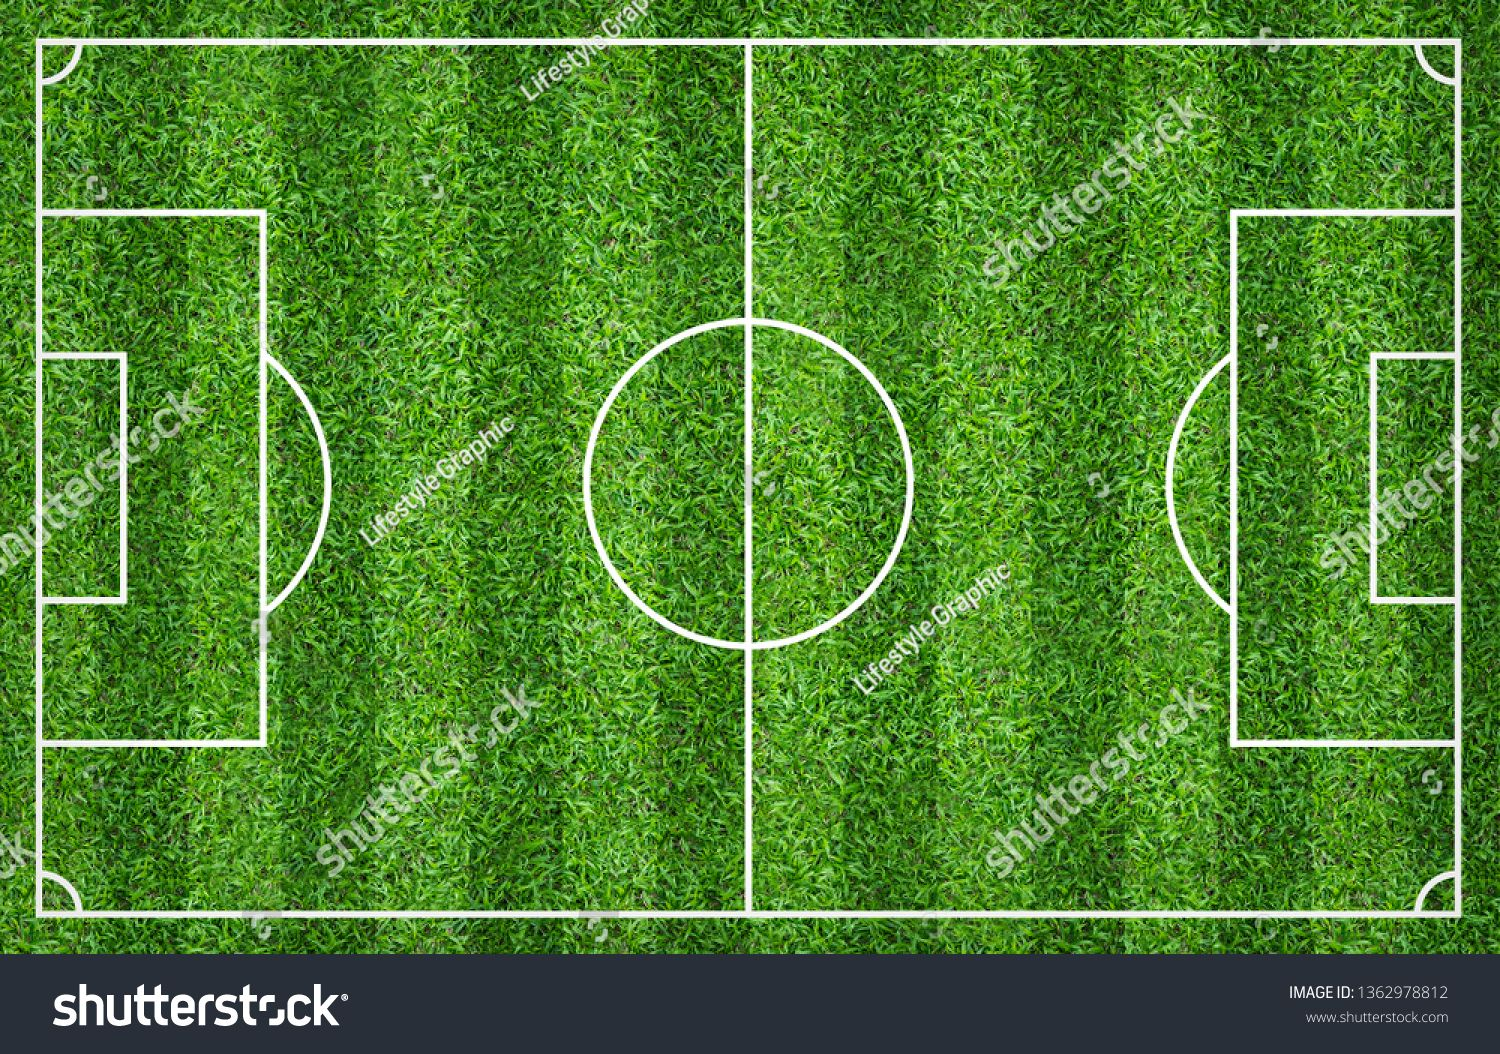 Football Field Or Soccer Field For Background Green Lawn Court For Create Soccer Game Ad Ad Soccer Background Footba Football Field Soccer Field Soccer